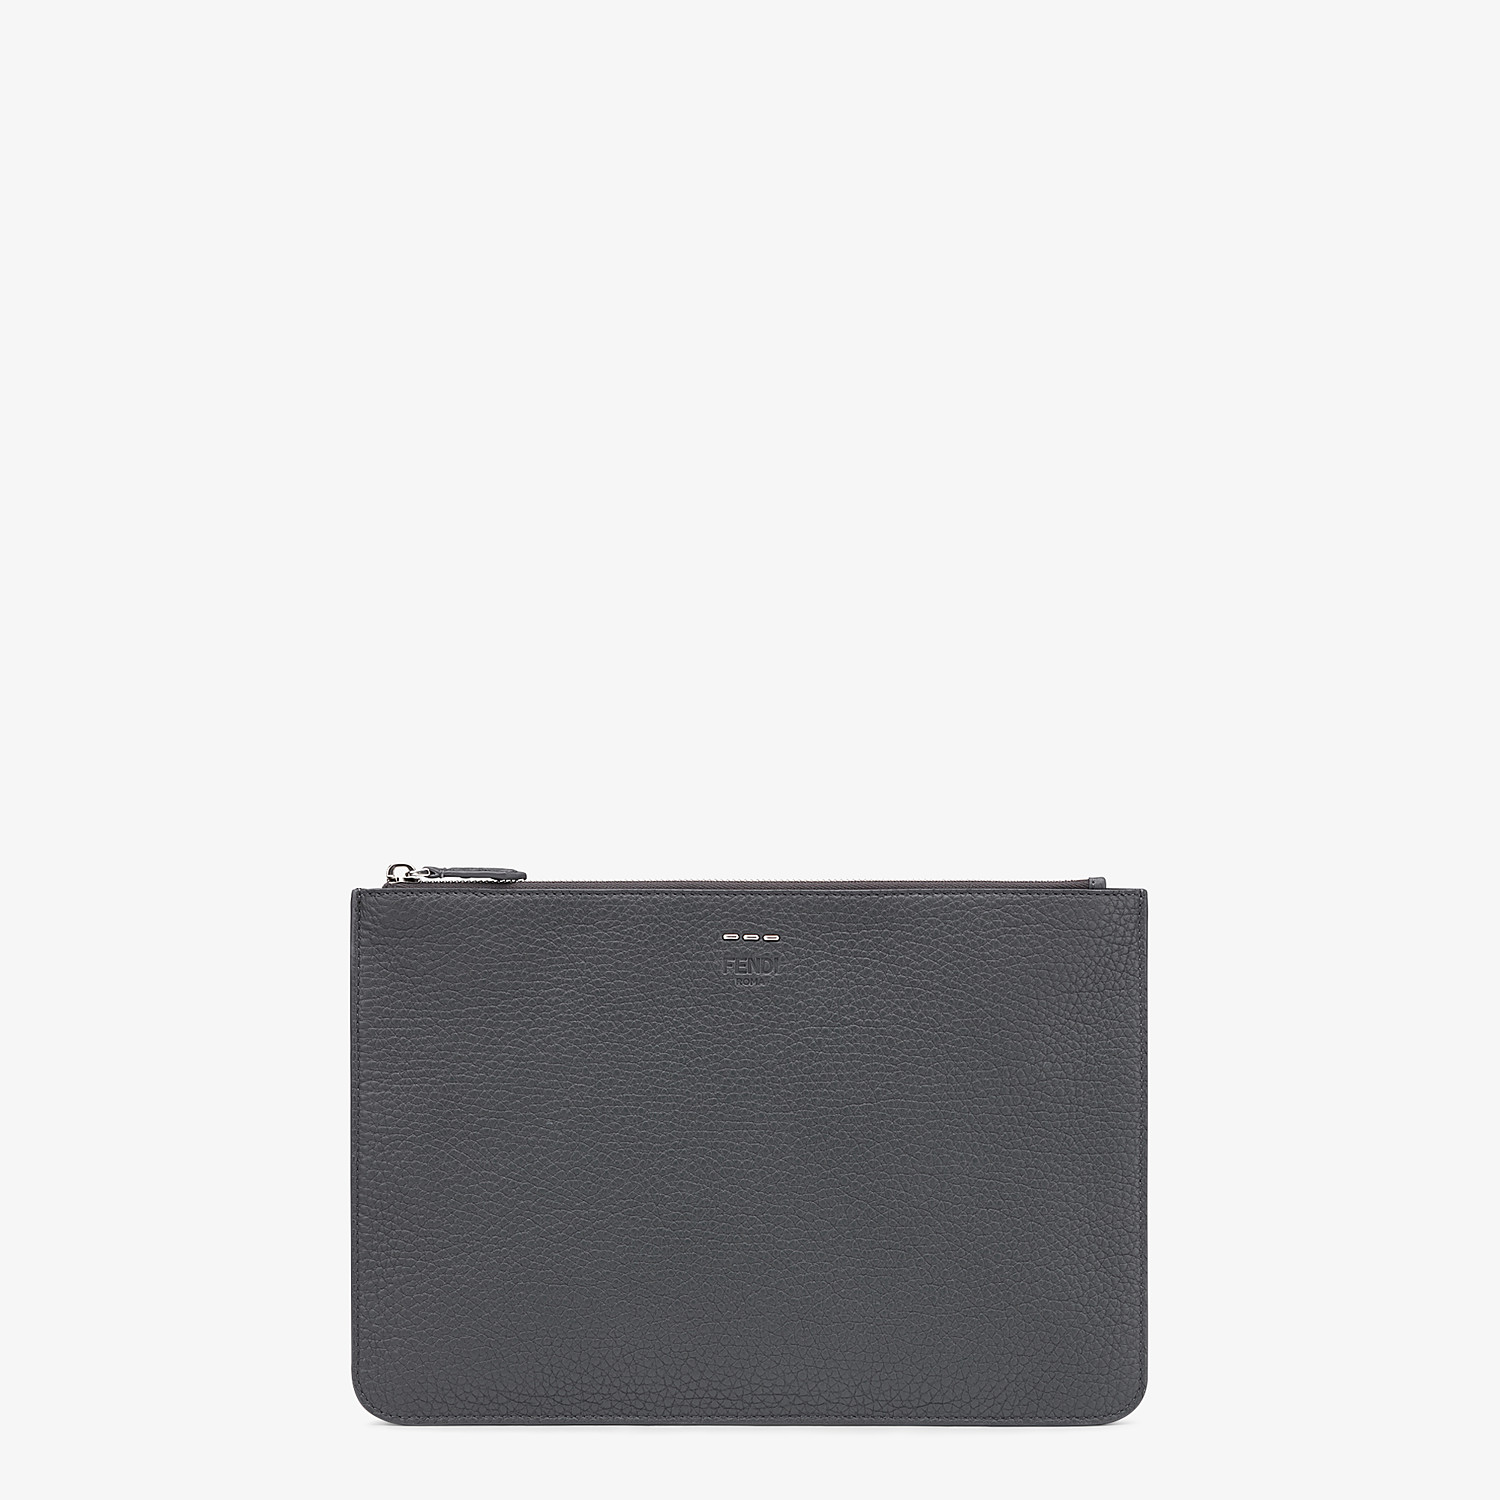 FENDI POUCH - Multicolor leather slim pouch - view 1 detail